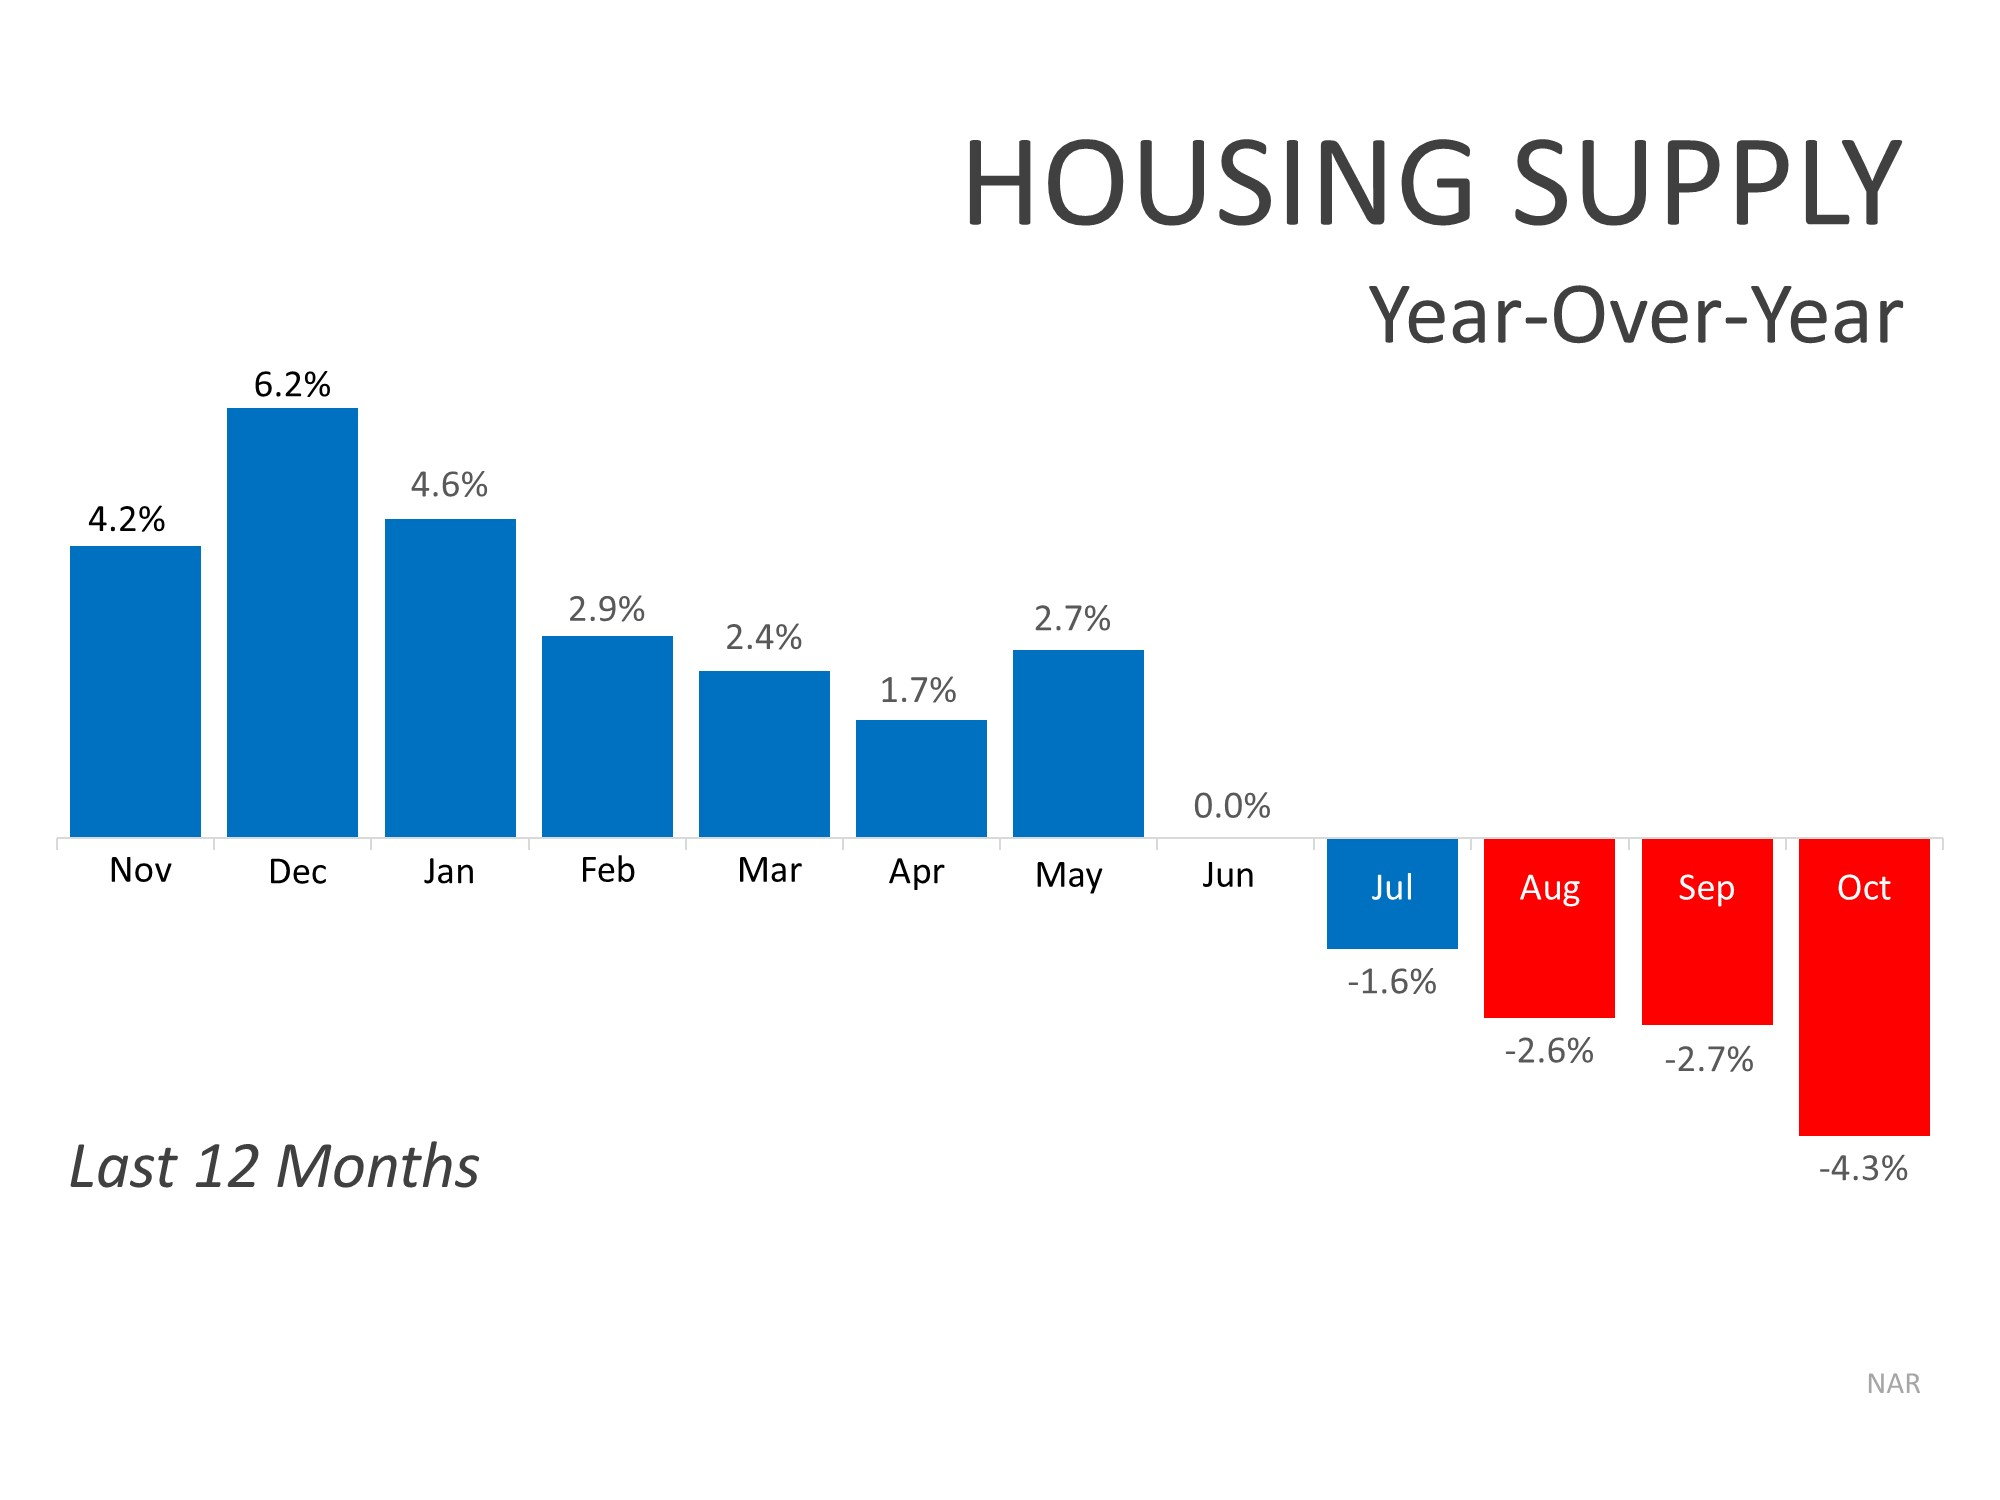 graph showing the housing supply for last 12 months